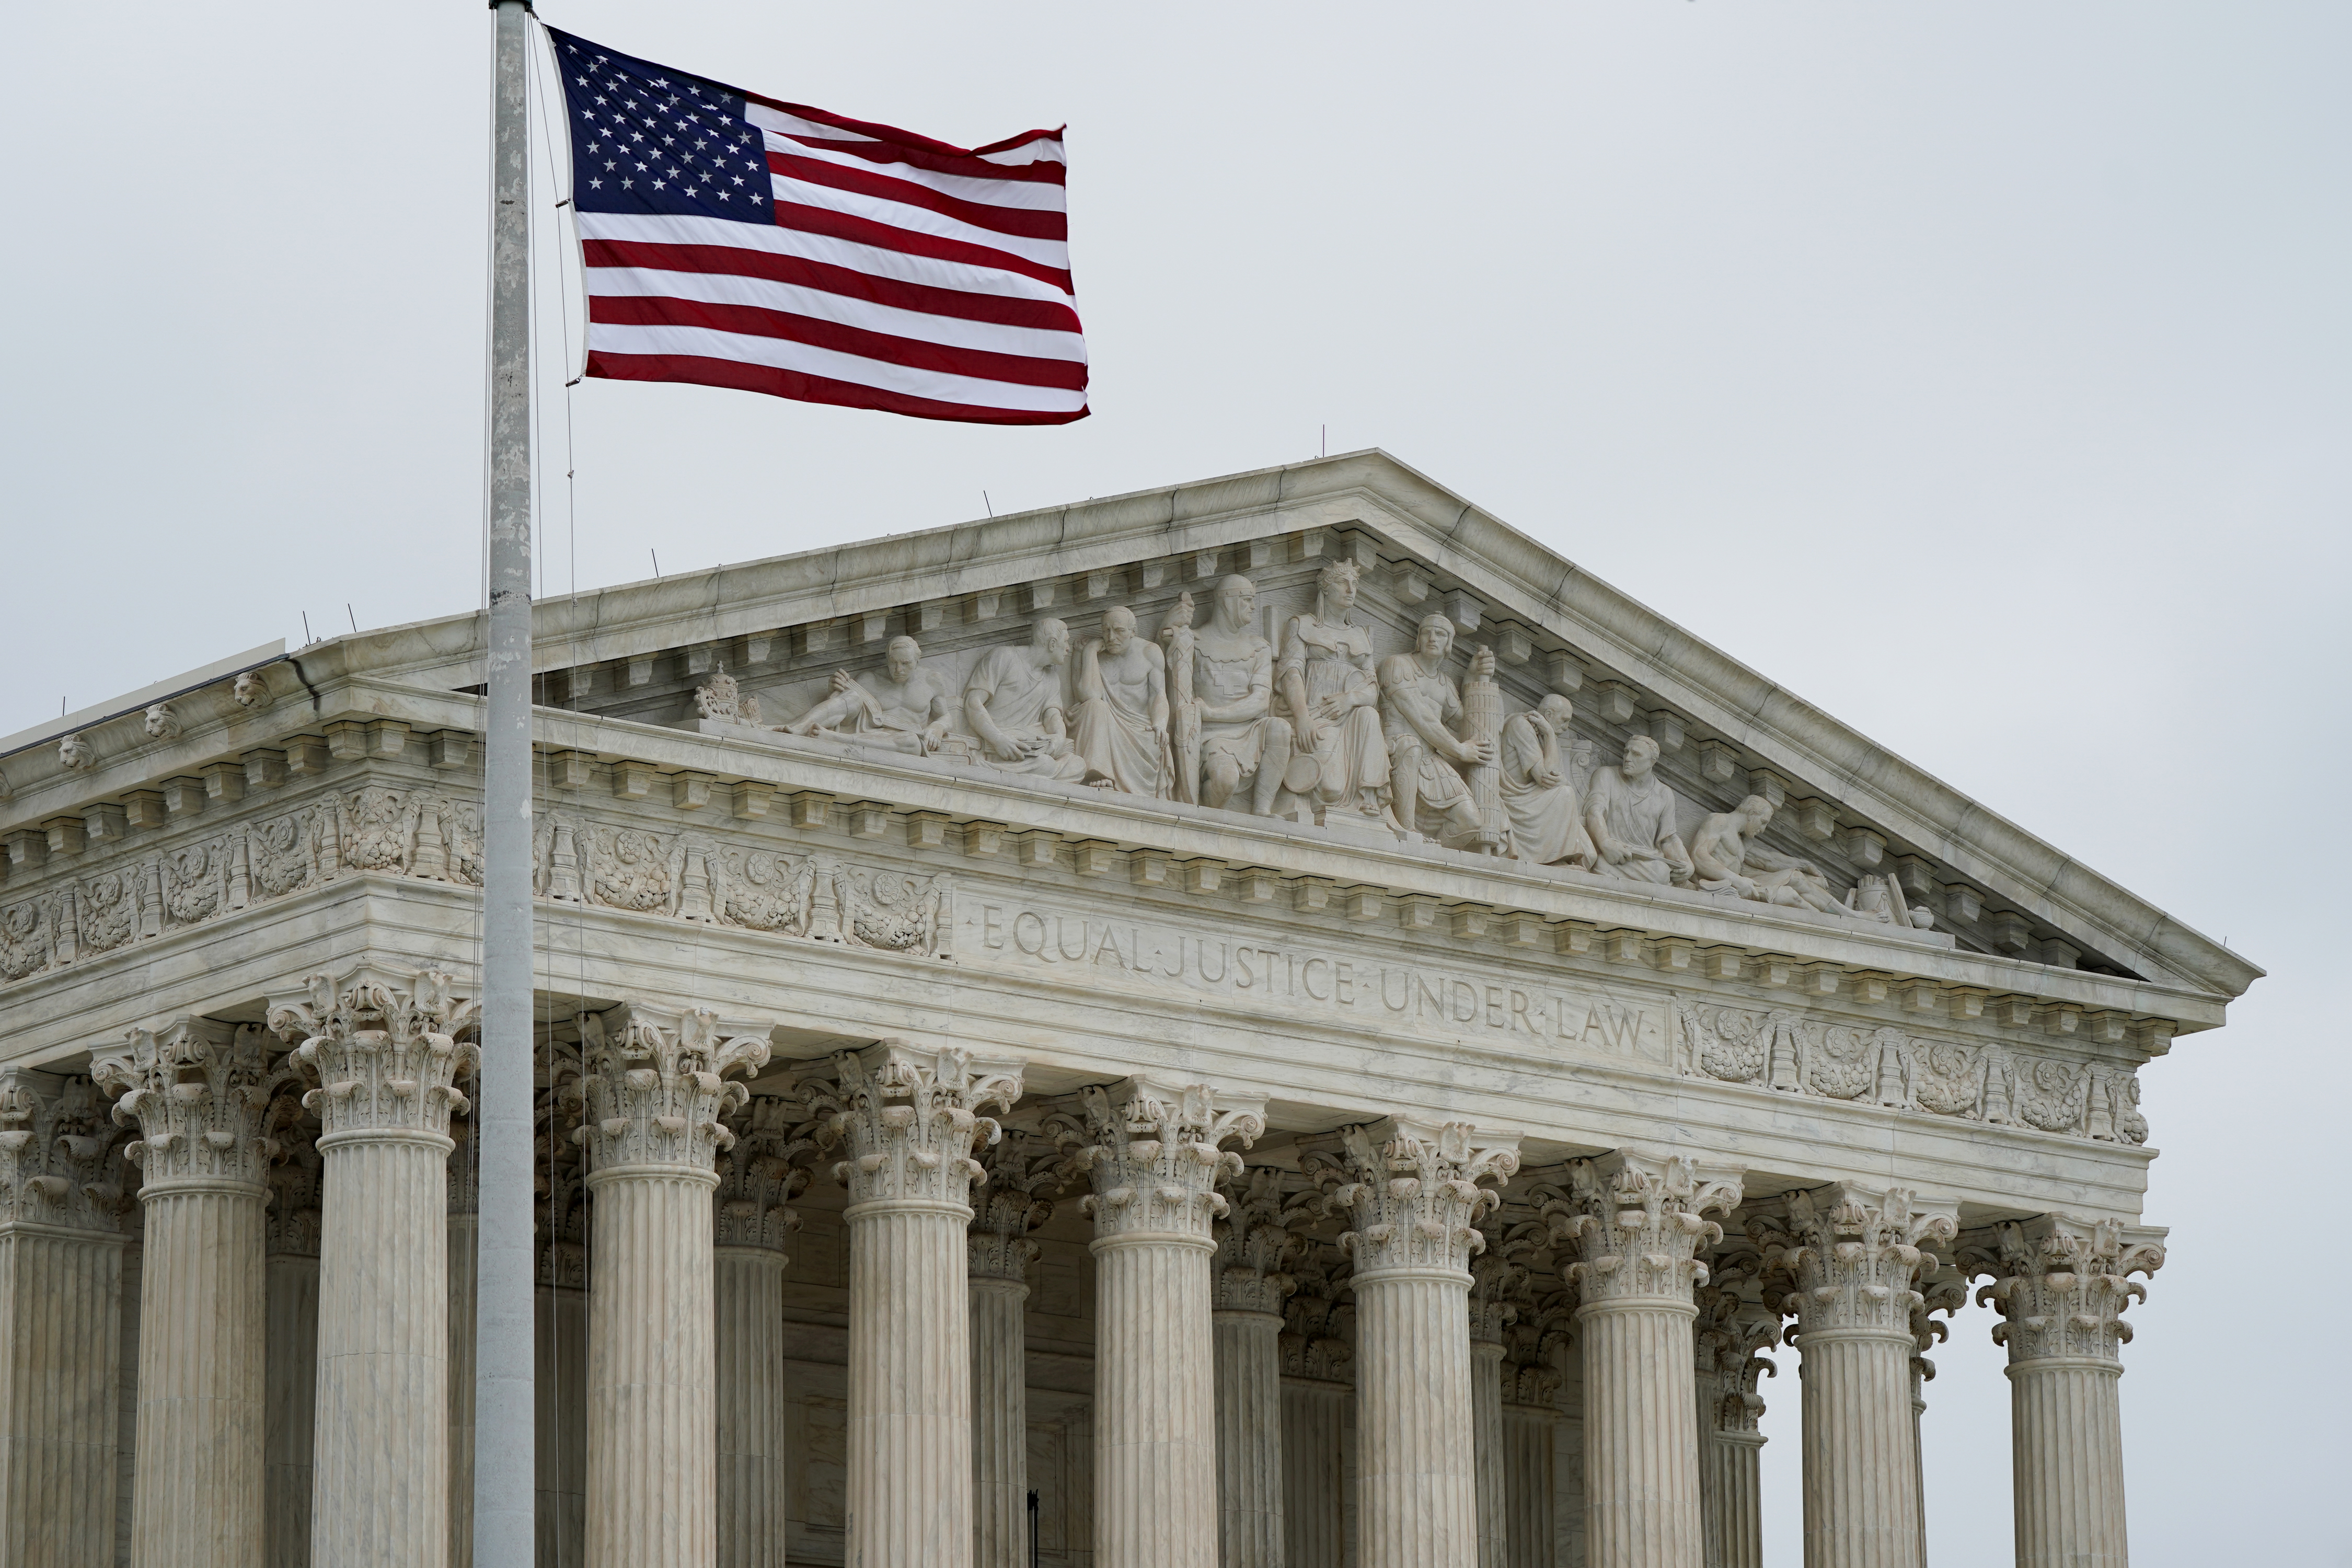 Holding Supreme Court Due For A Dose Of Activism. Personal Injury Attorney South Carolina. Depression When To Seek Help. First Private Bank Of Texas Music School Nj. Center For Discovery California. Chronic Atrial Fibrillation Definition. Virtual Trade Show Booth Secure Business Loan. Poor Credit Debt Consolidation Loans. Pa Life Insurance Exam Business In Healthcare